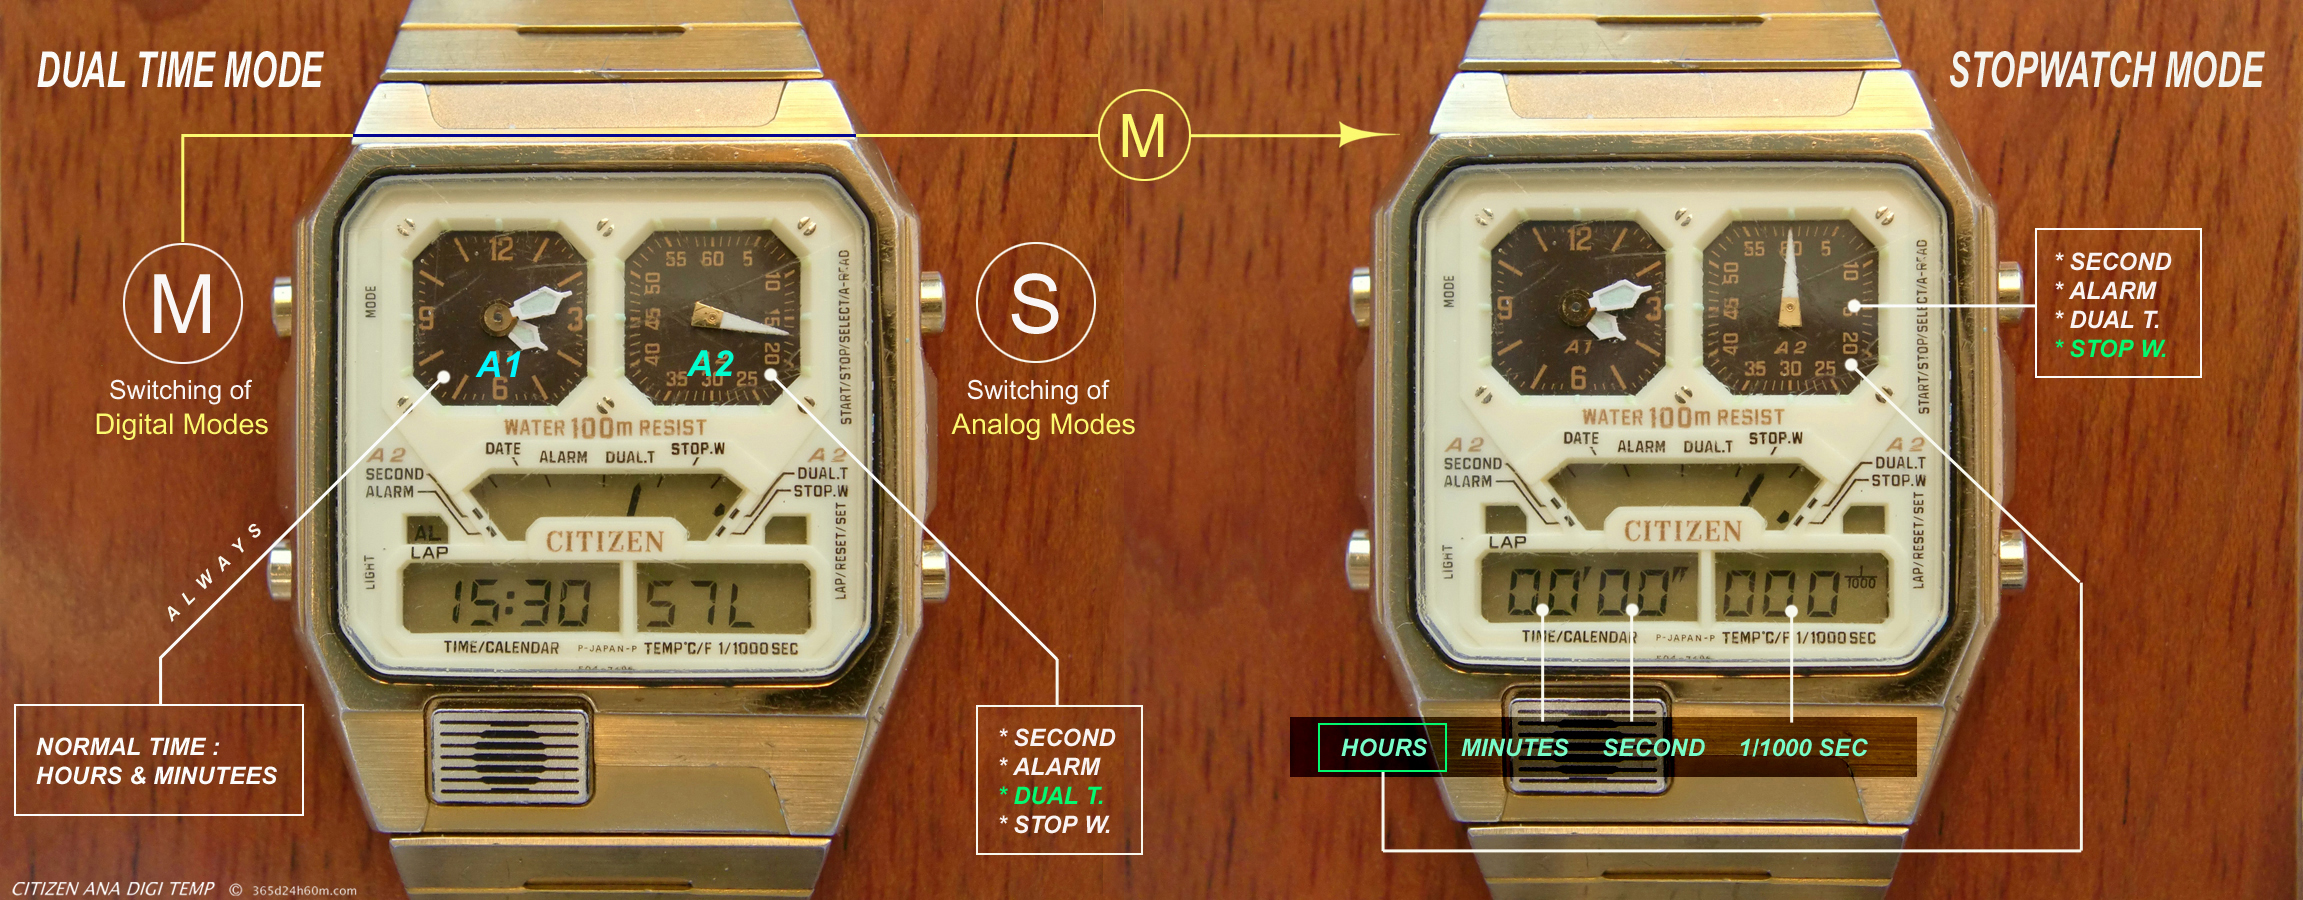 2-nd Analog Watch Indication after the entry into the Digital Stopwatch Mode…Click to enlarge !